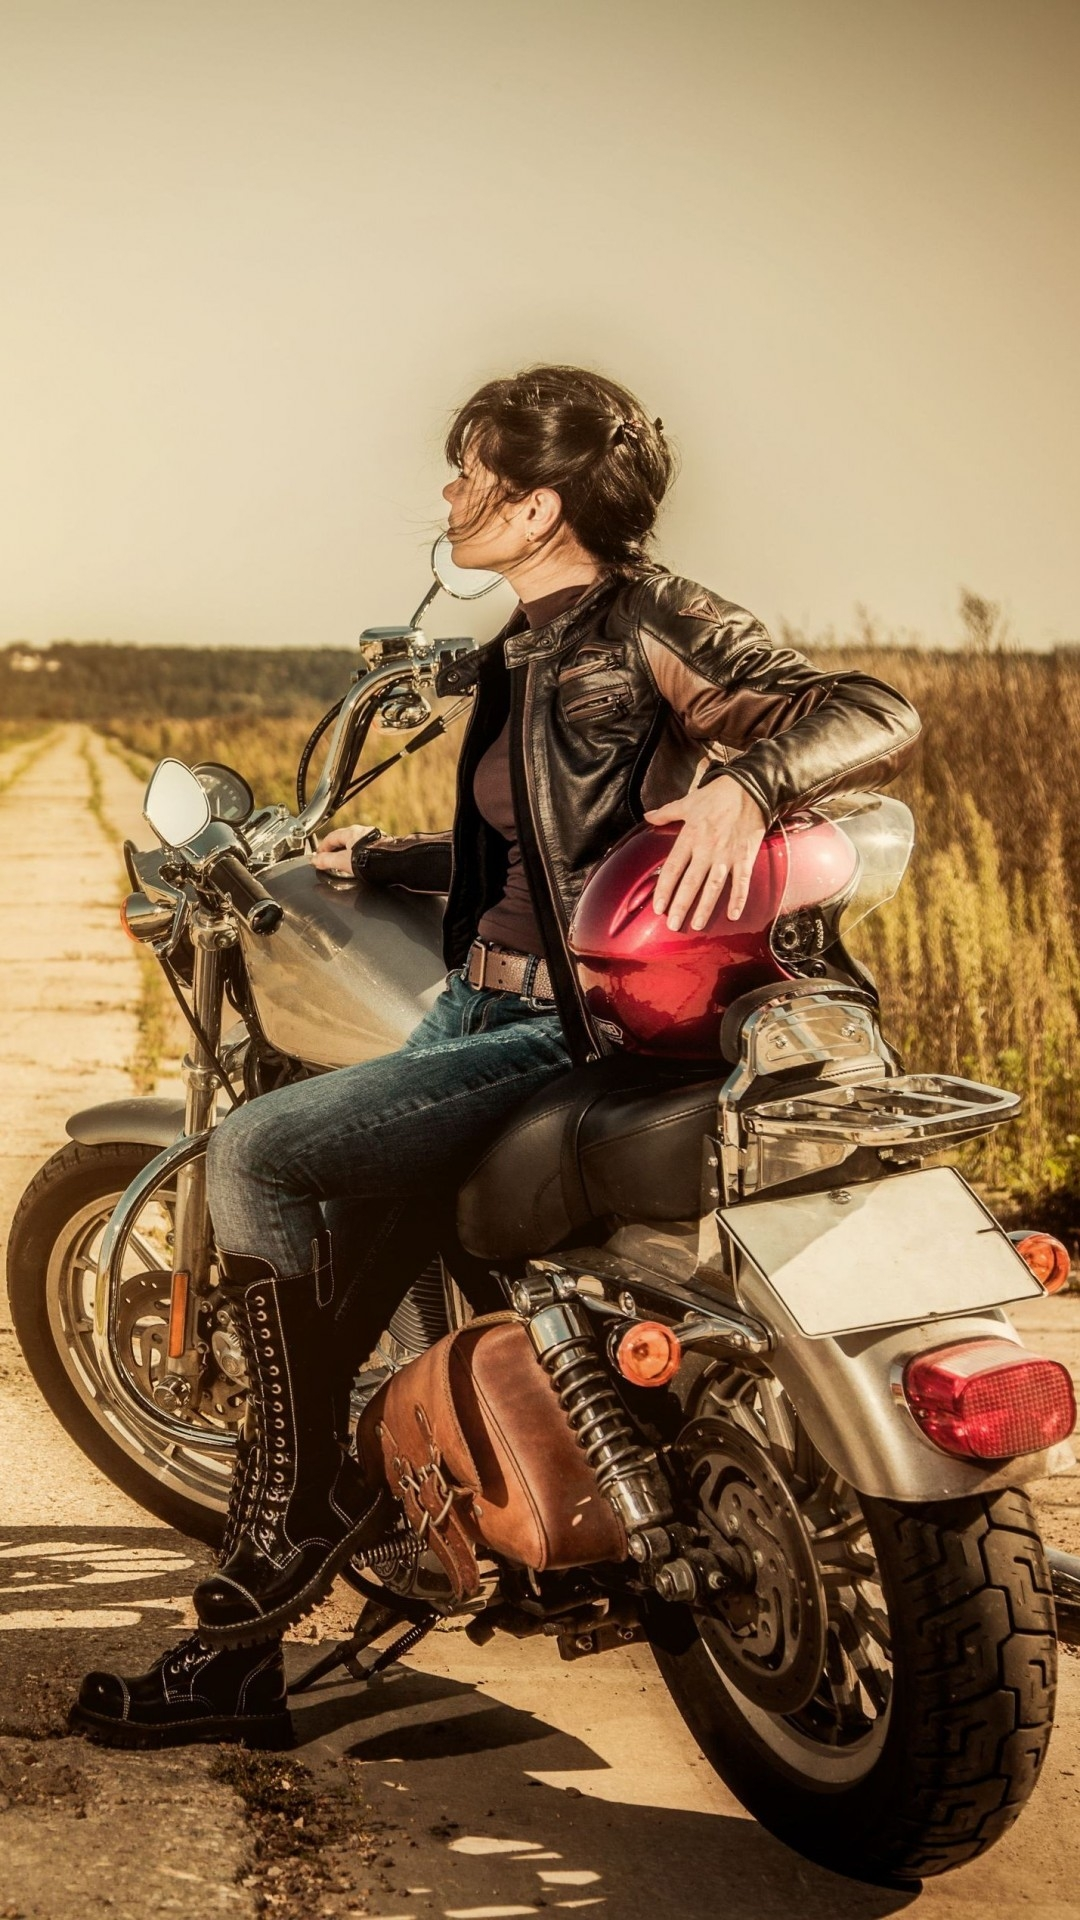 click here to download 1080x1920 pixel girl motorcycle android best wallpaper